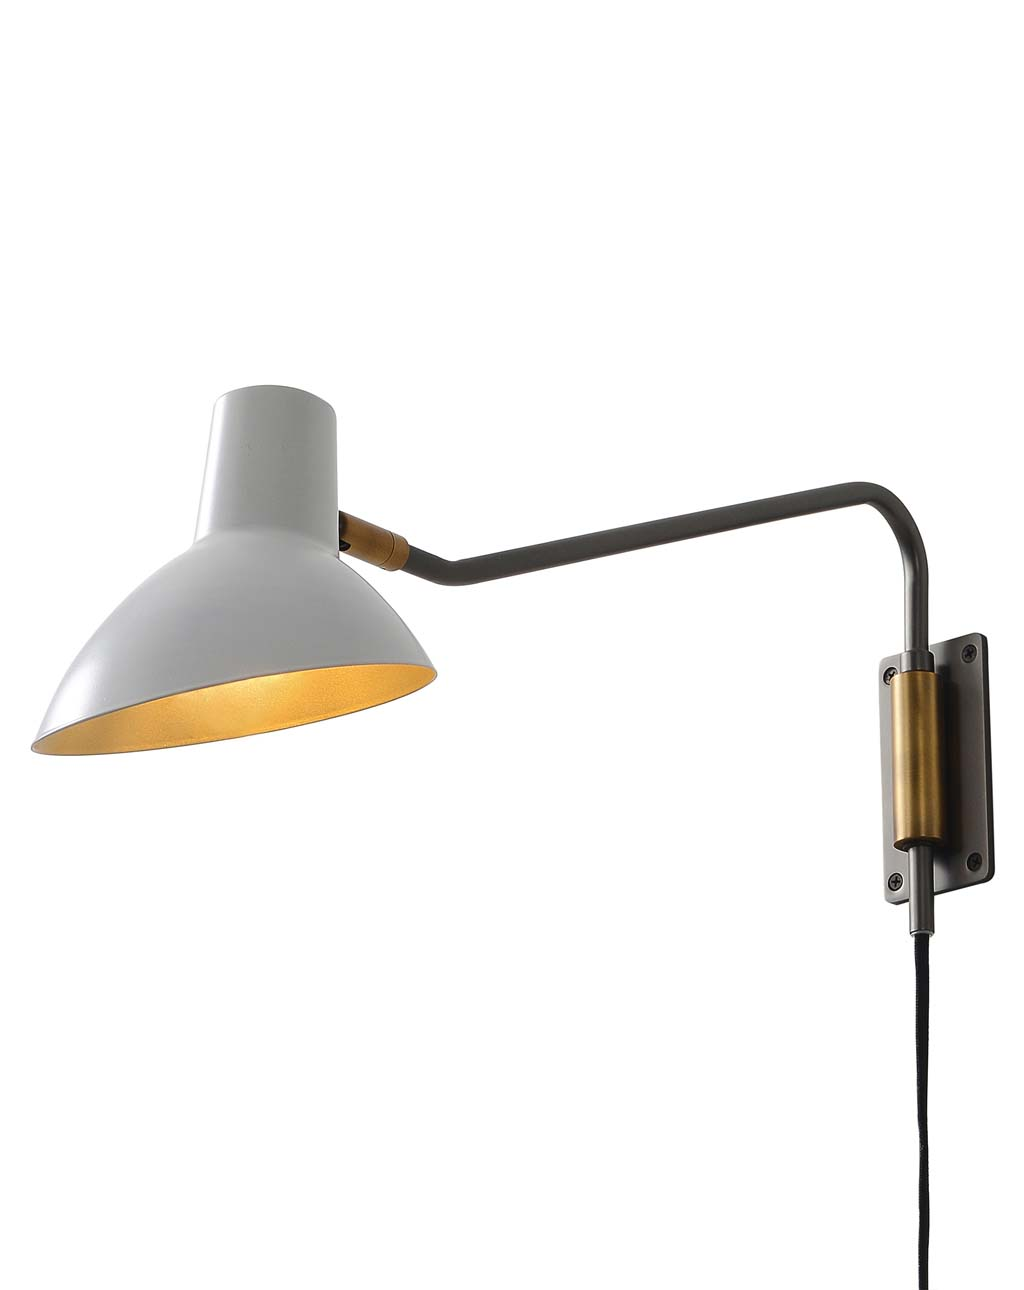 Swing Sconce, White Shade with Gunmetal Body